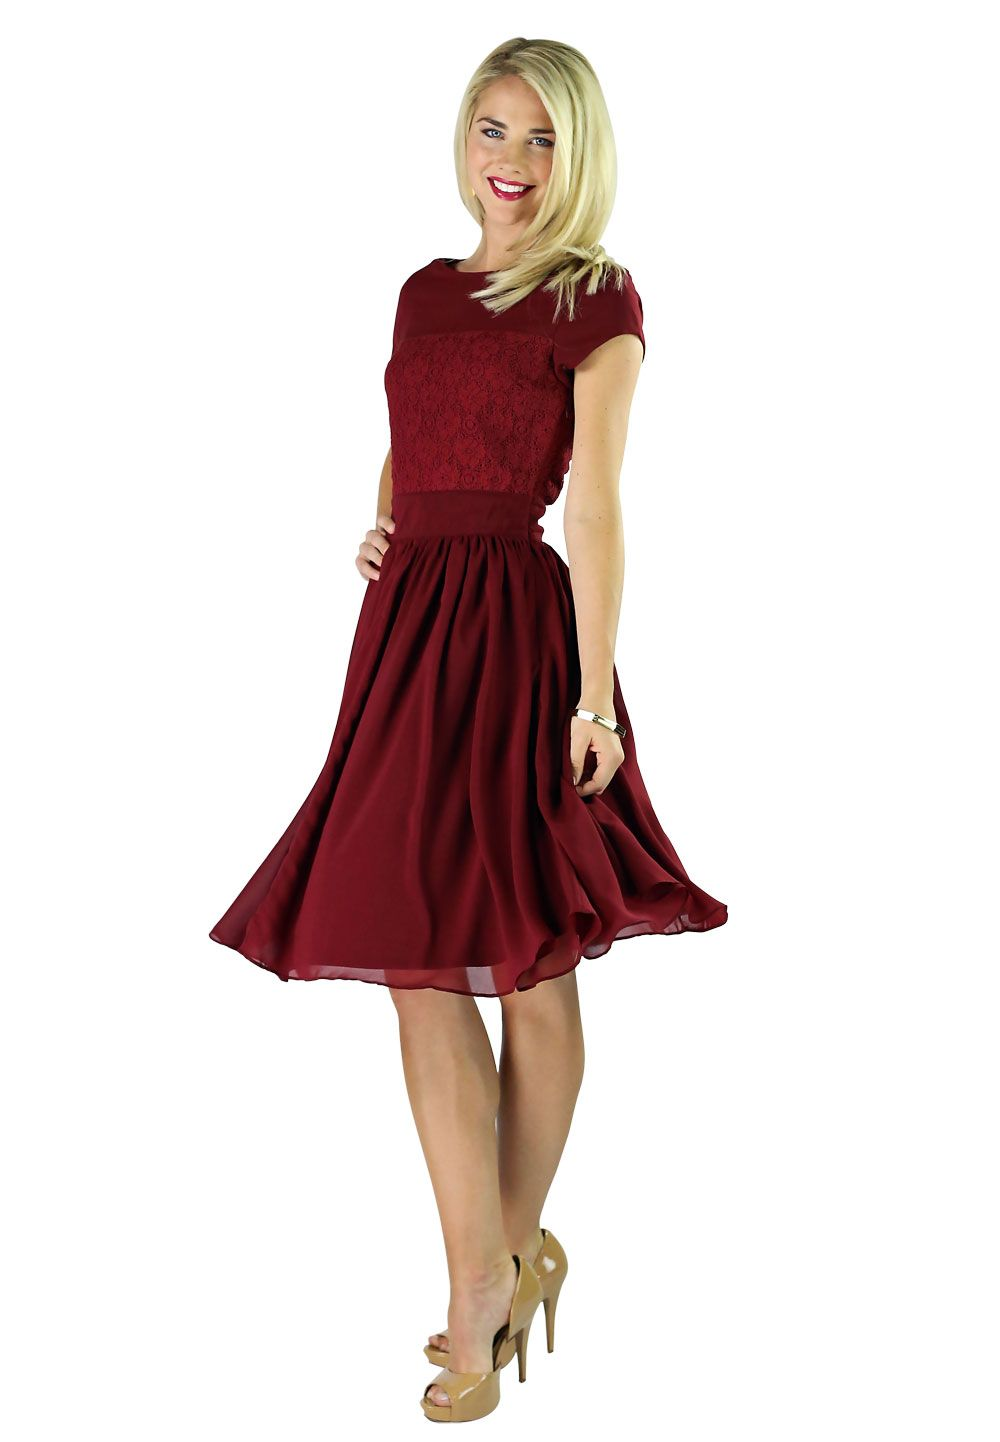 Isabel modest dress in deep red 3g 10001442 kristjn rn modest knee length a line dress with sleeves in berry red lace modest bridesmaid dress mother of the bride dress or prom dress in red ombrellifo Image collections